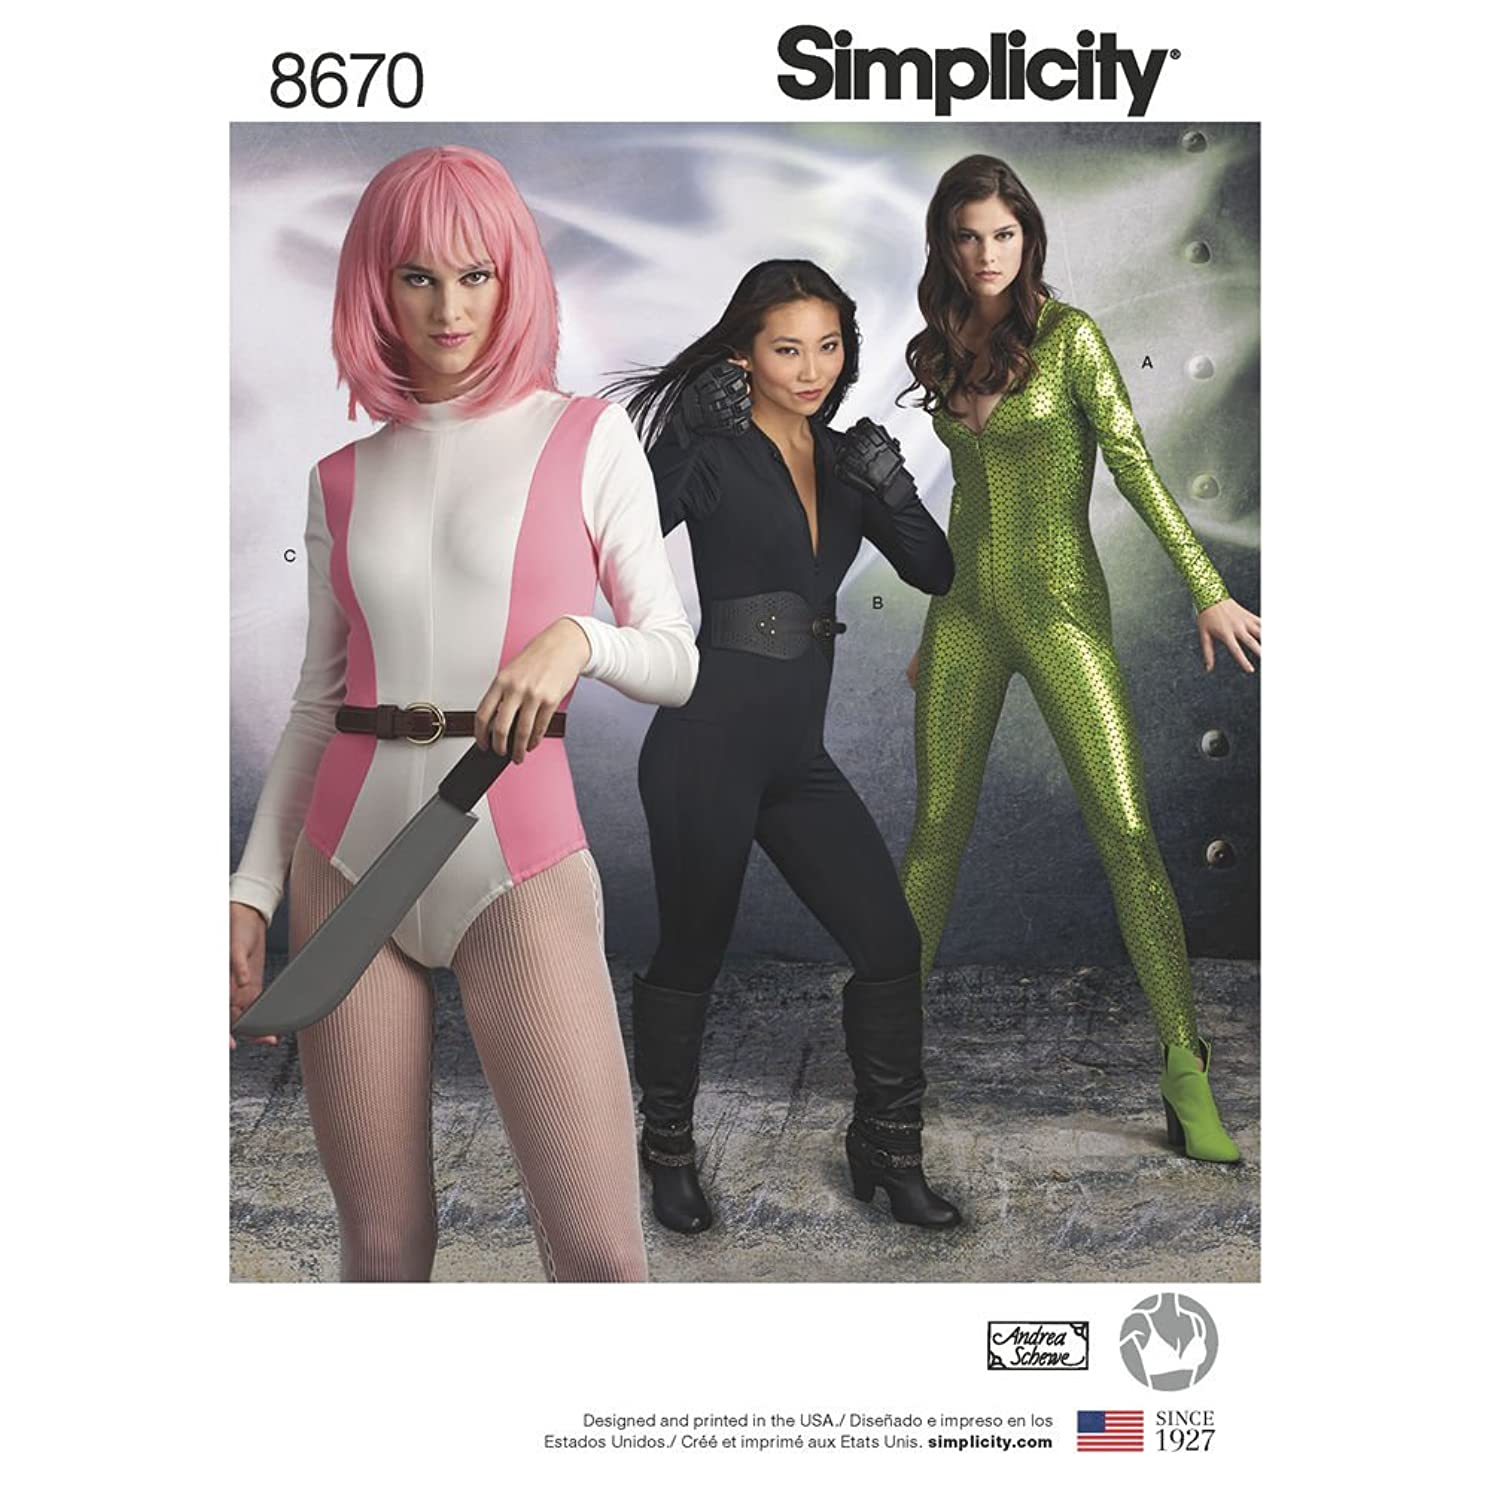 Simplicity Patterns US8670U5 Costumes, U5 (16-18-20-22-24)